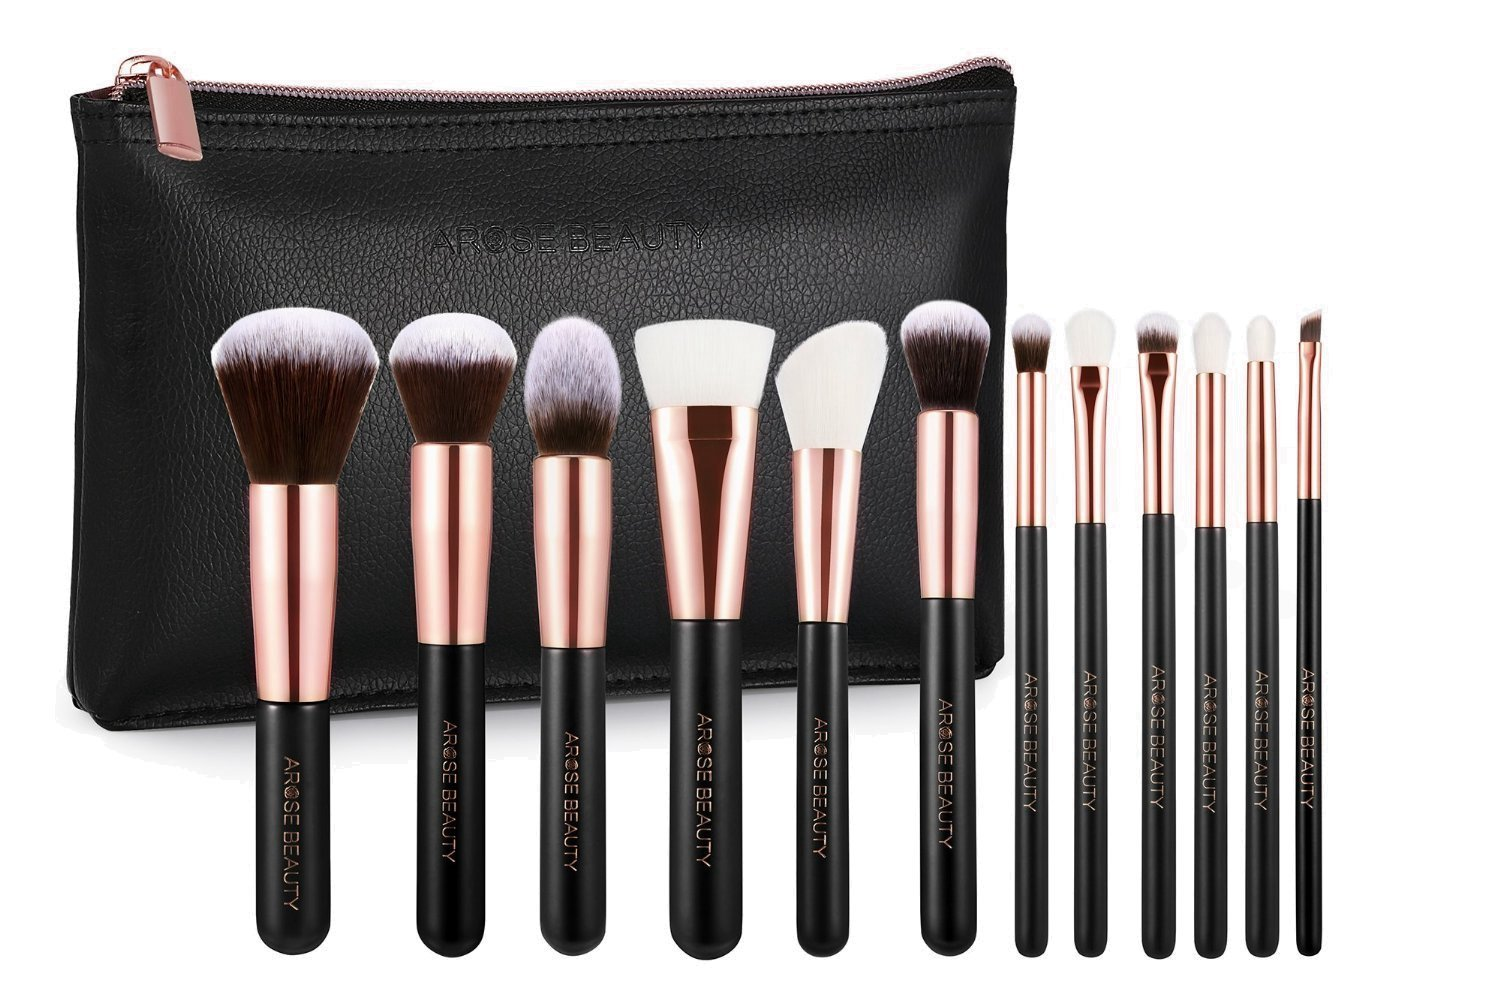 Amazon Brand - Arose Beauty Rose Gold Luxury Brush Set 12pc Makeup Face & Eye Essentials | Premium Quality Handcrafted Soft and Plush